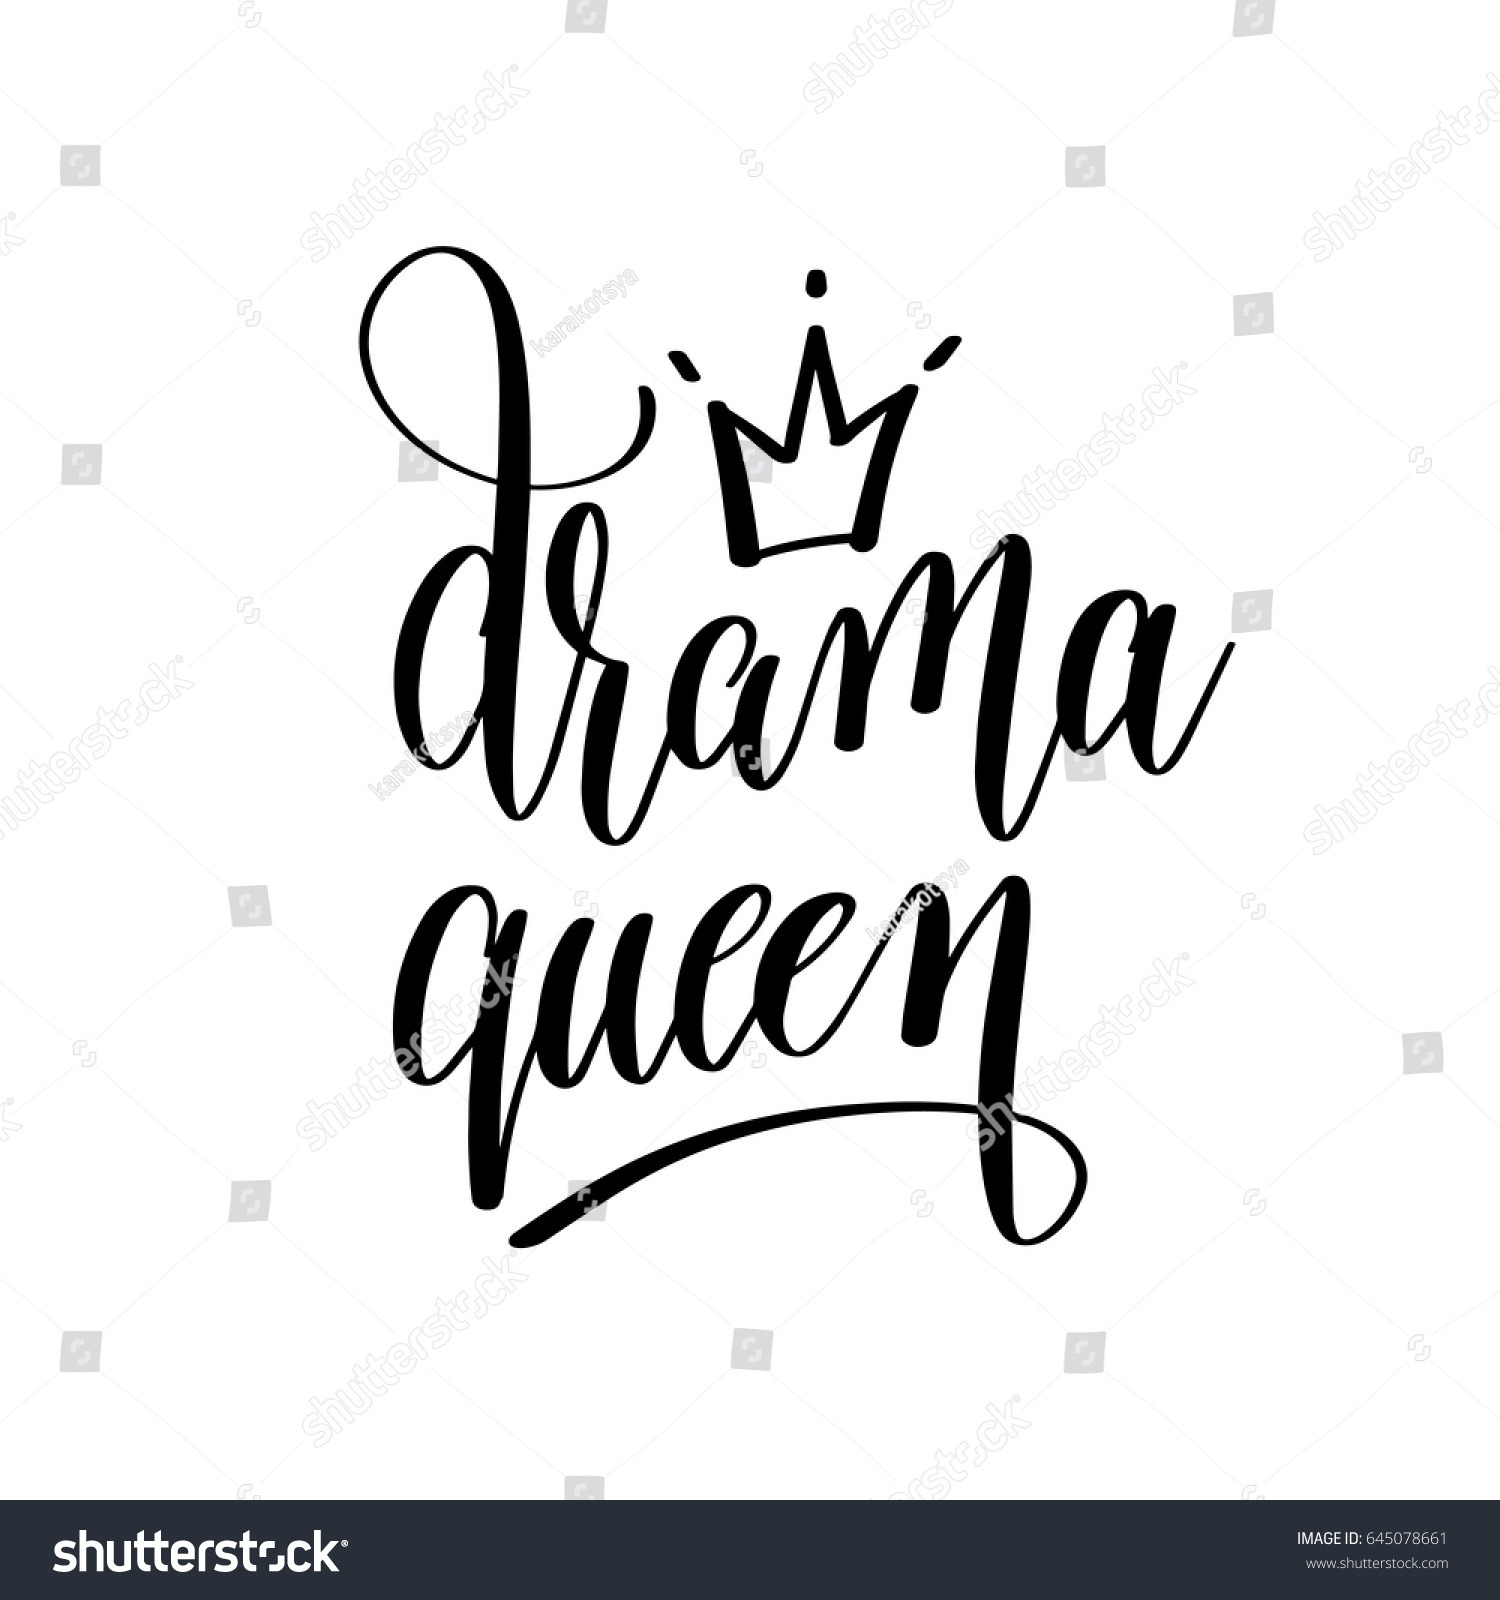 Powerful Quotes Phone Wallpaper Drama Queen Black White Hand Lettering Stock Vector